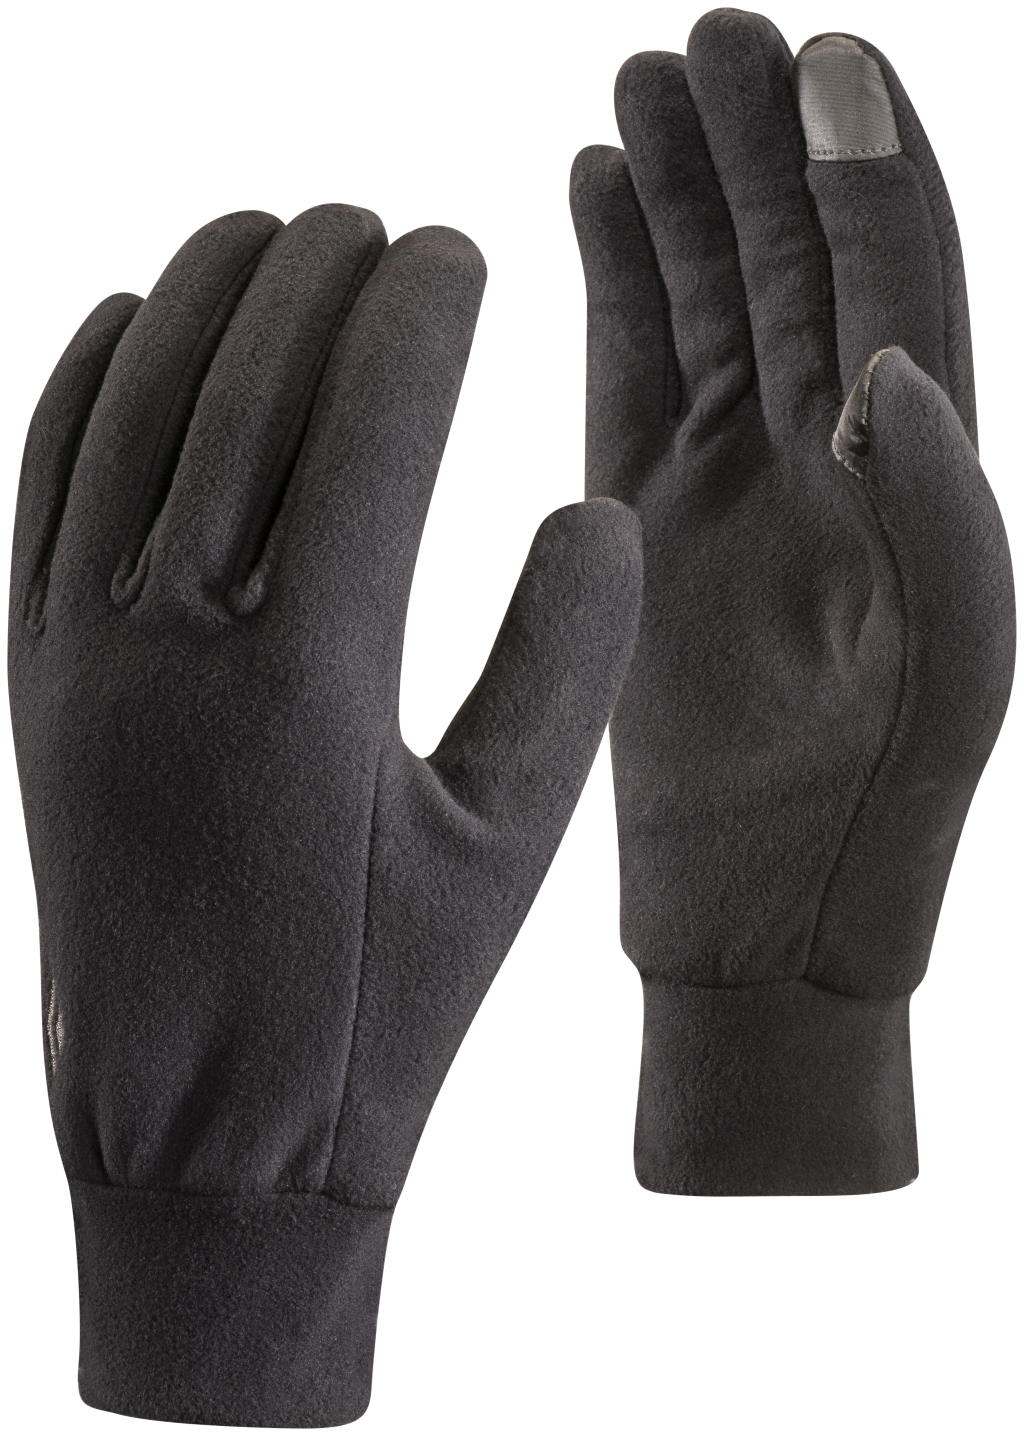 Black Diamond Lightweight Fleece Gloves Black-30